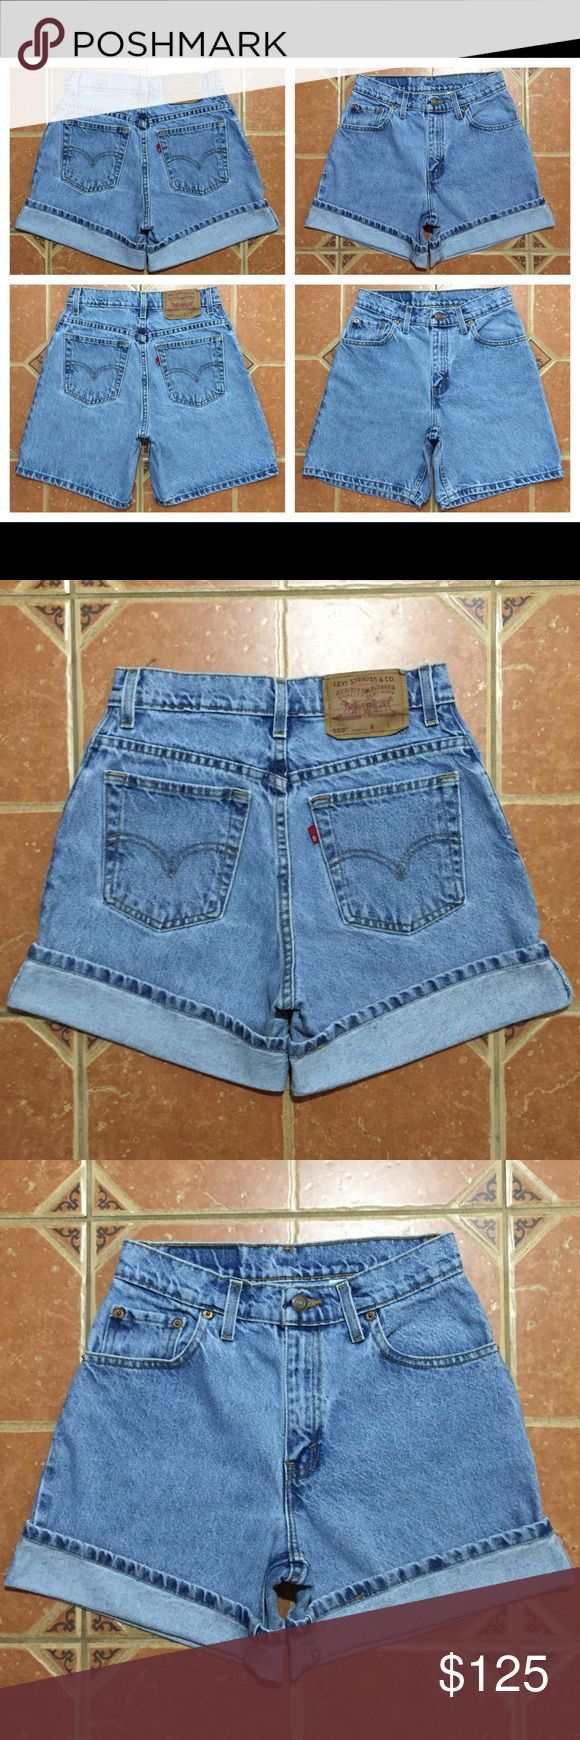 "Vintage 90s Levis 550 High Waisted Mom Jean Shorts Vintage 90s Levis 550 Relaxed Fit High Waisted Mom Jean Denim Shorts  MEASUREMENTS: ACROSS WAIST: 13"" ACROSS HIPS: 19"" RISE: 10"" INSEAM: 6.5"" LEG OPENING: 10.5"" Levi's Shorts Jean Shorts"